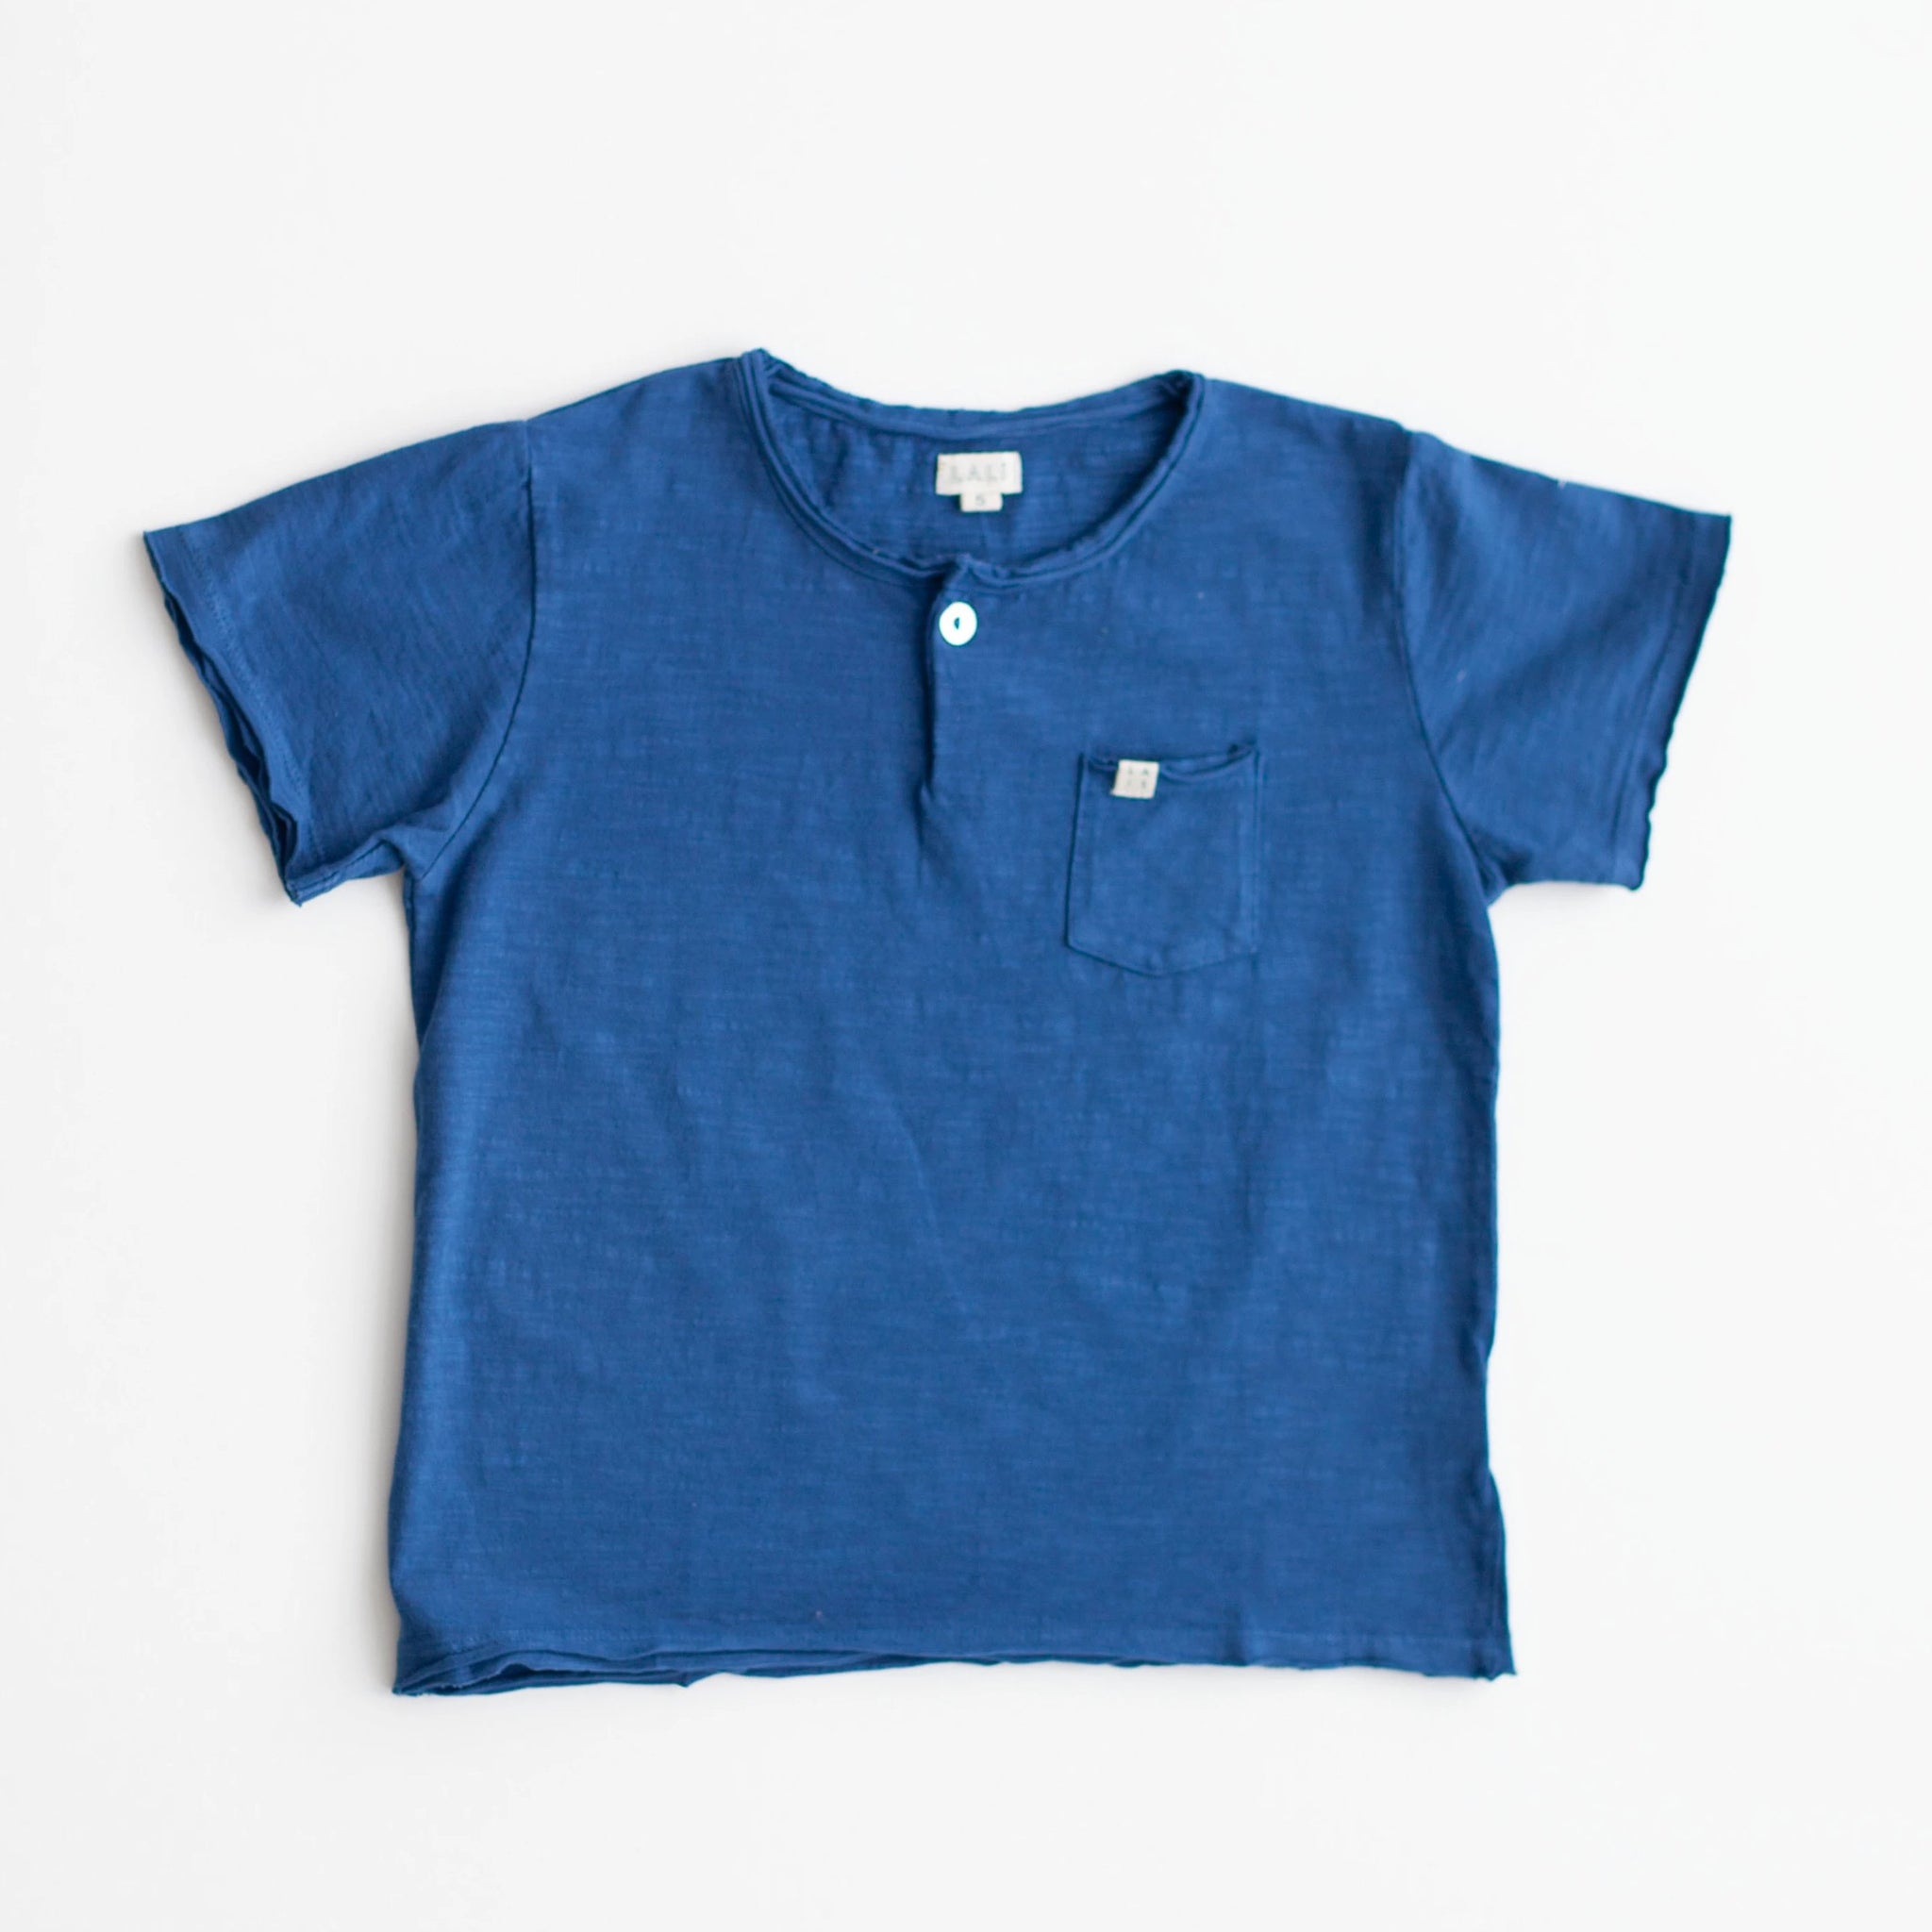 Boys Buckeye Tee - Blue